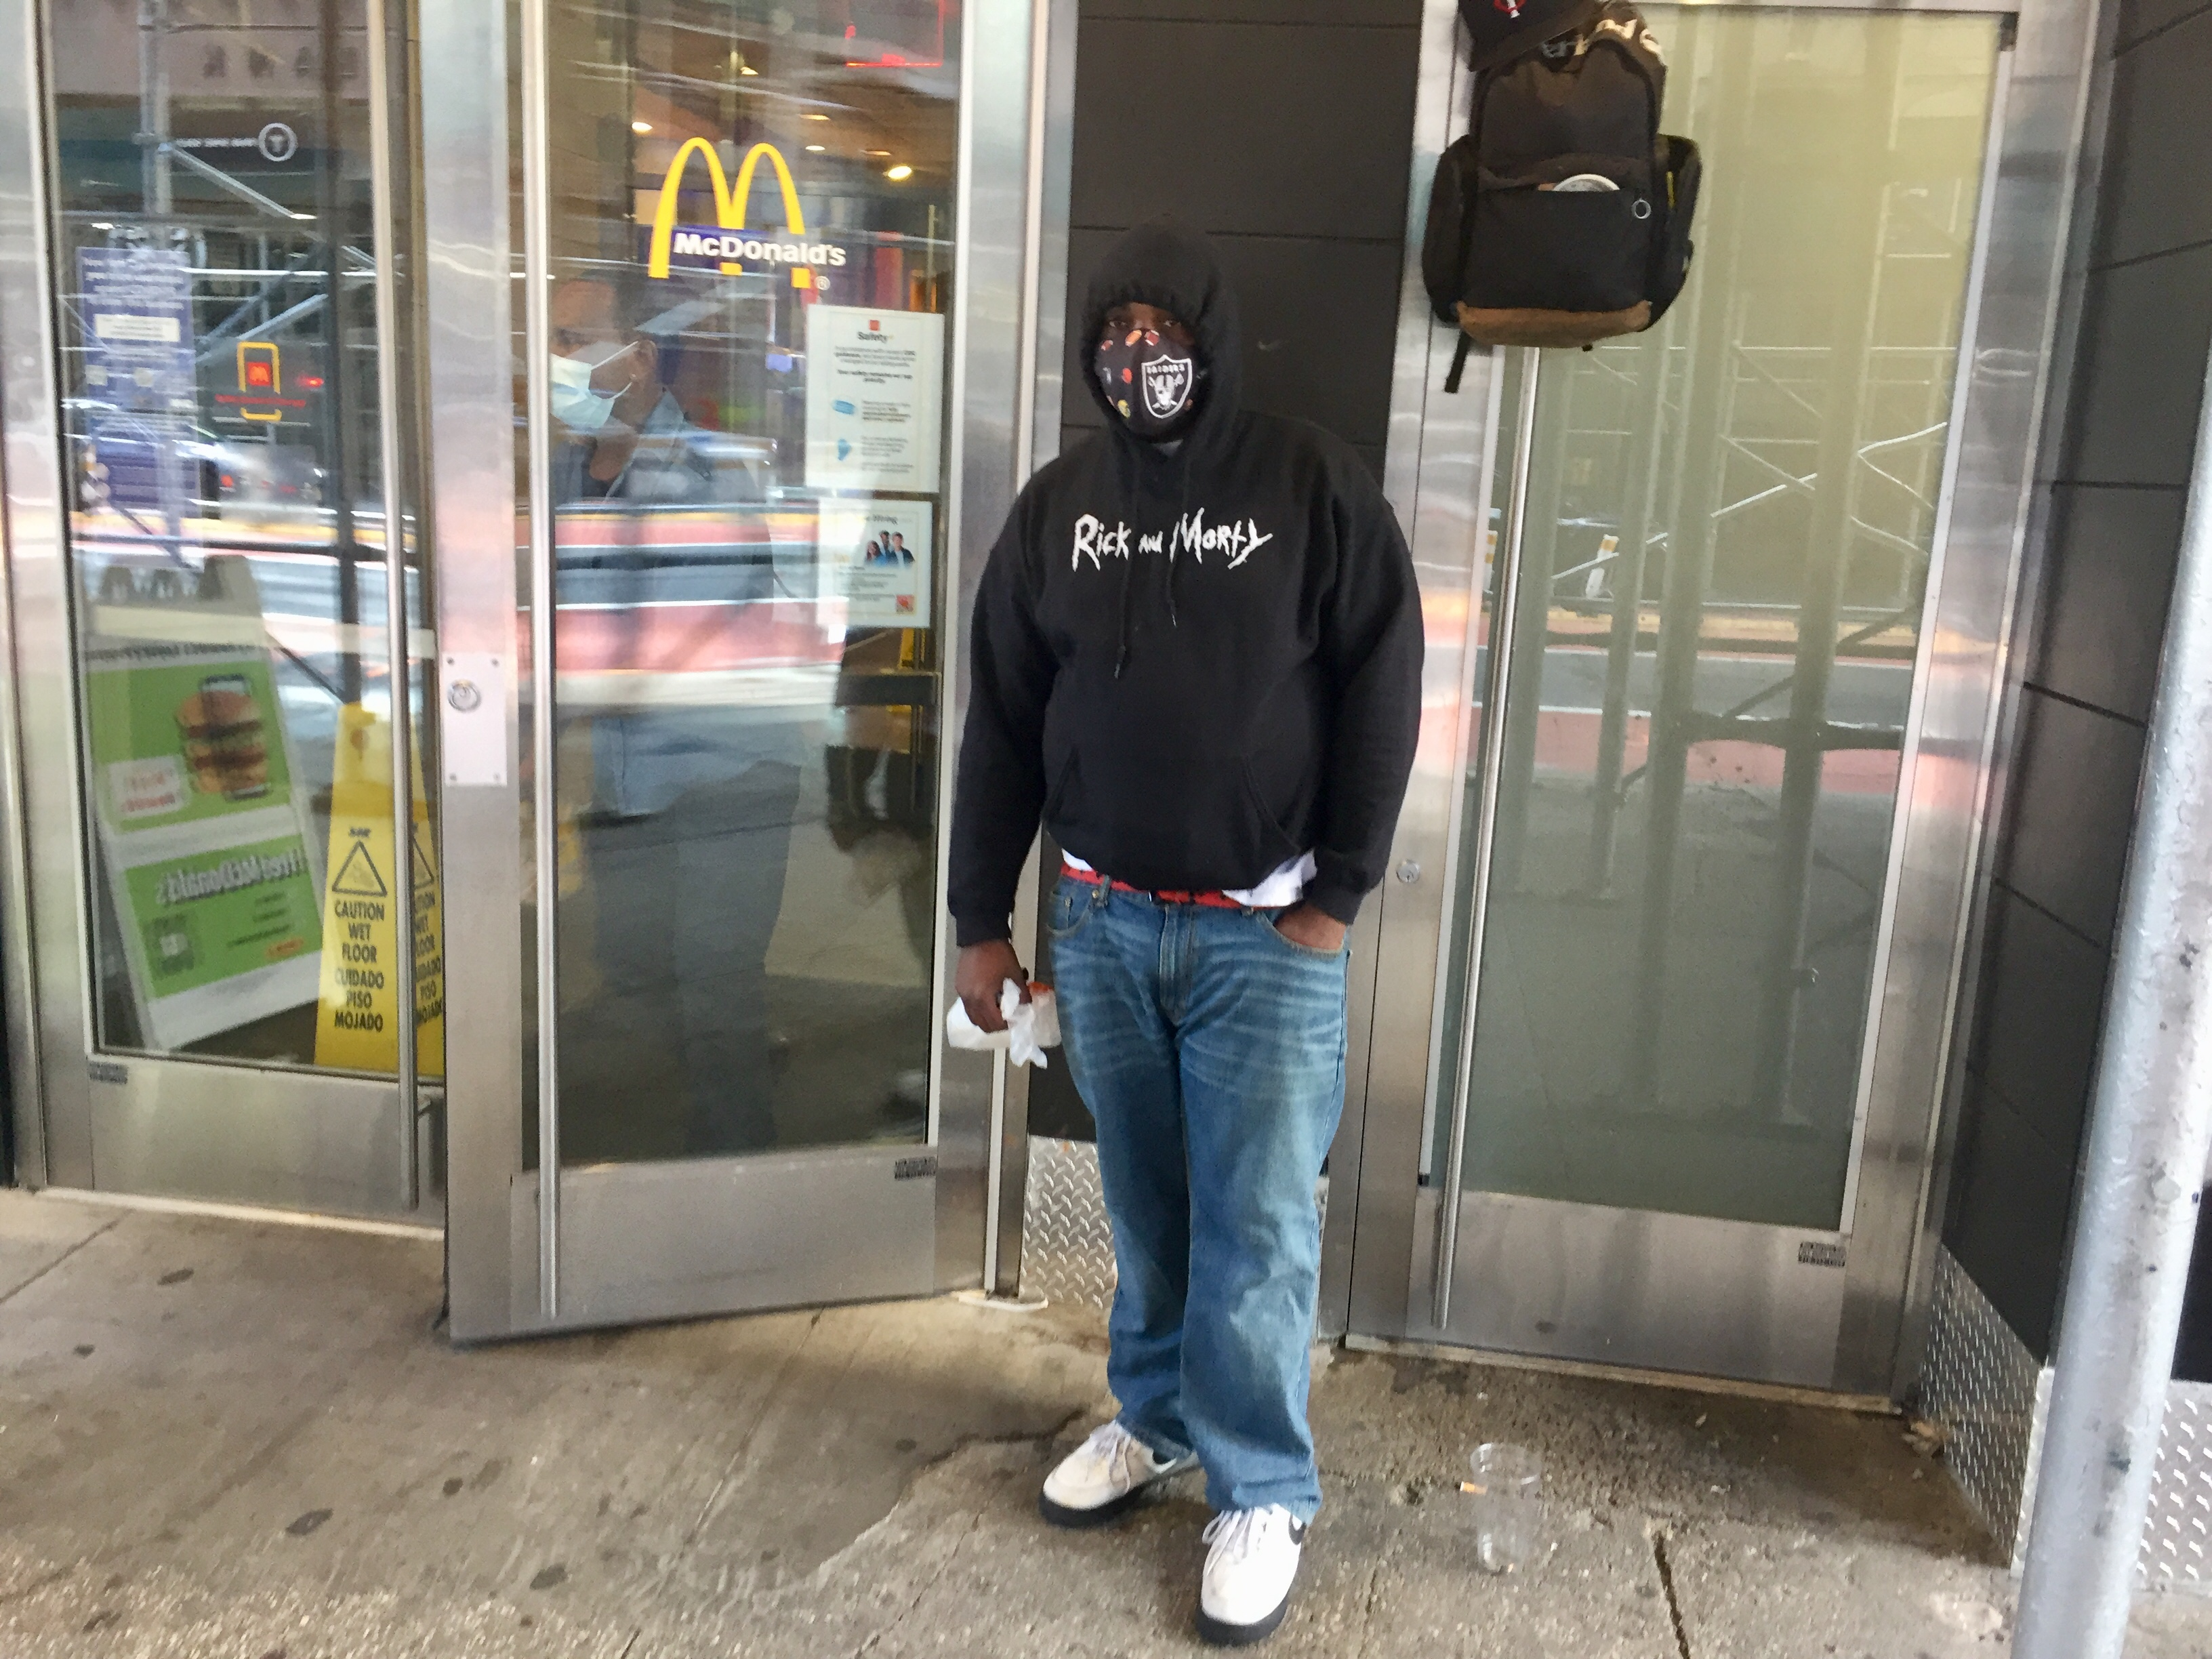 A black man wearing jeans and a hooded sweatshirt wears a mask outside a building